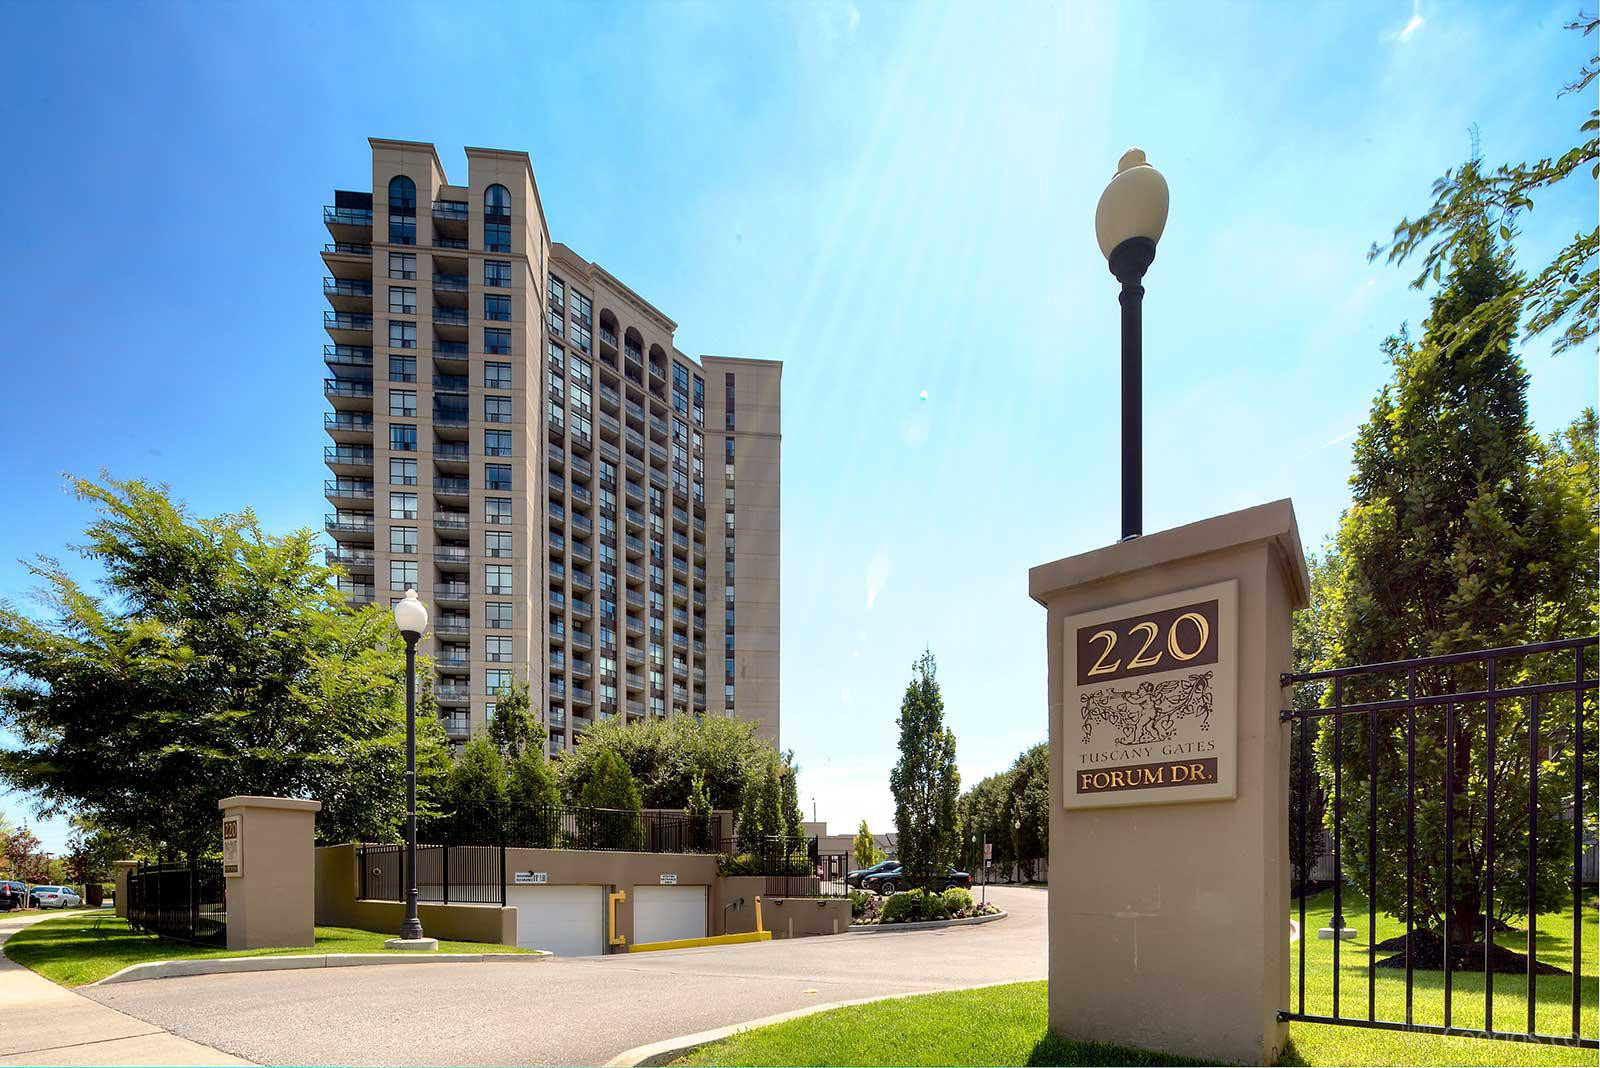 Tuscany Gate at 220 Forum Dr, Mississauga 0